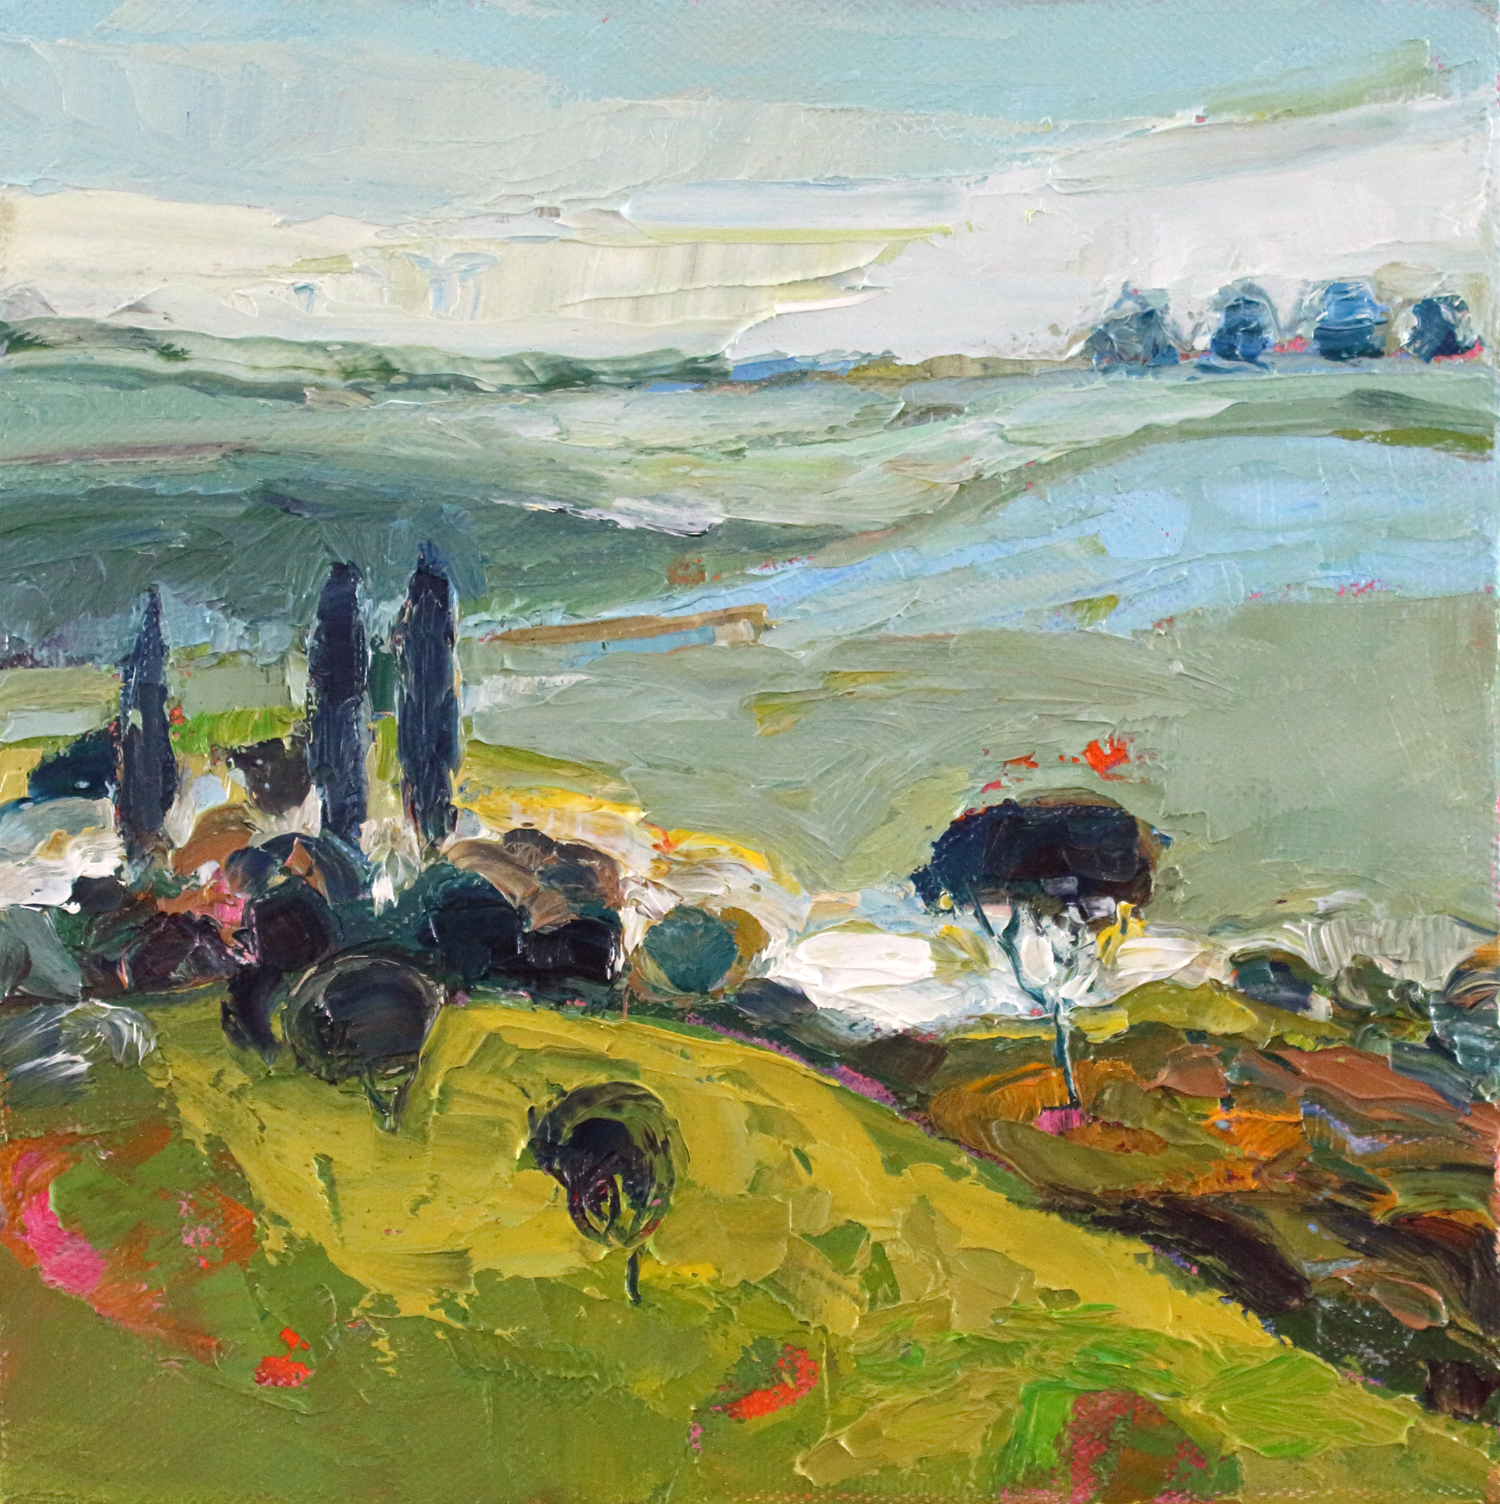 Artist: Kirsty Wither  Title: Layers of Fields  Size: 20 x 20 cm  Medium: Oil on canvas  Price: SOLD